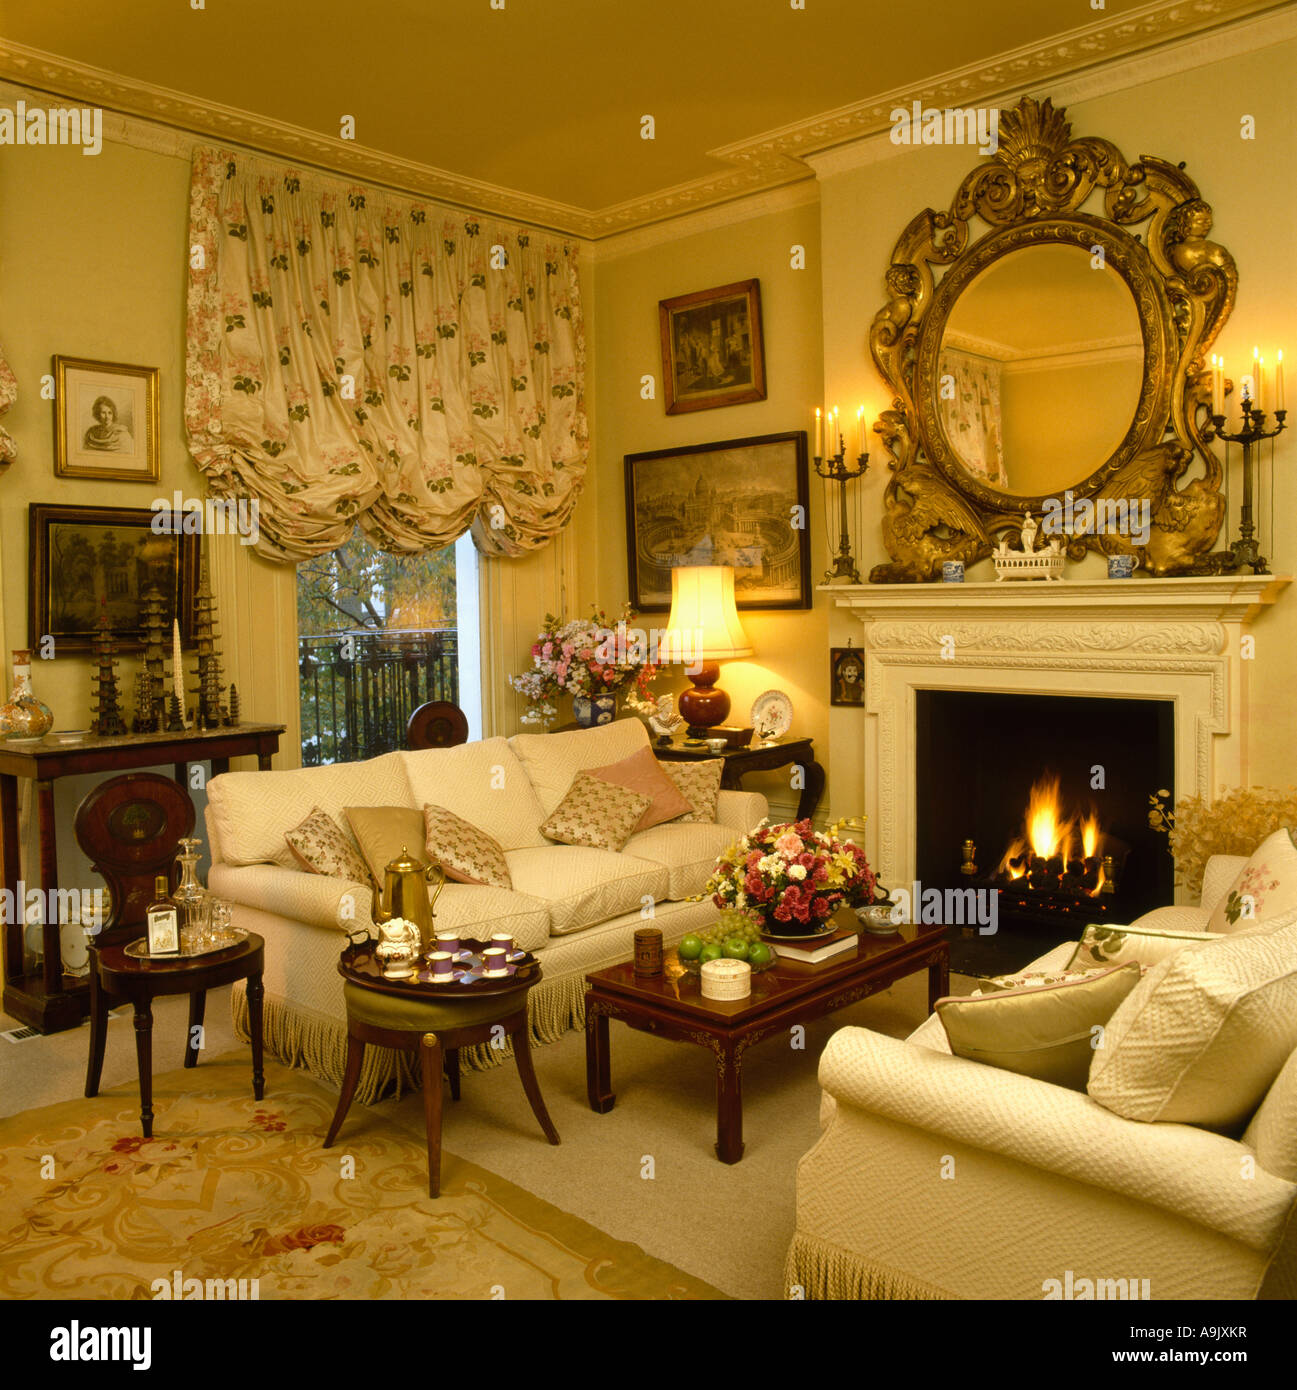 Large ornate gilt mirror above fireplace with fire lit in cream ...